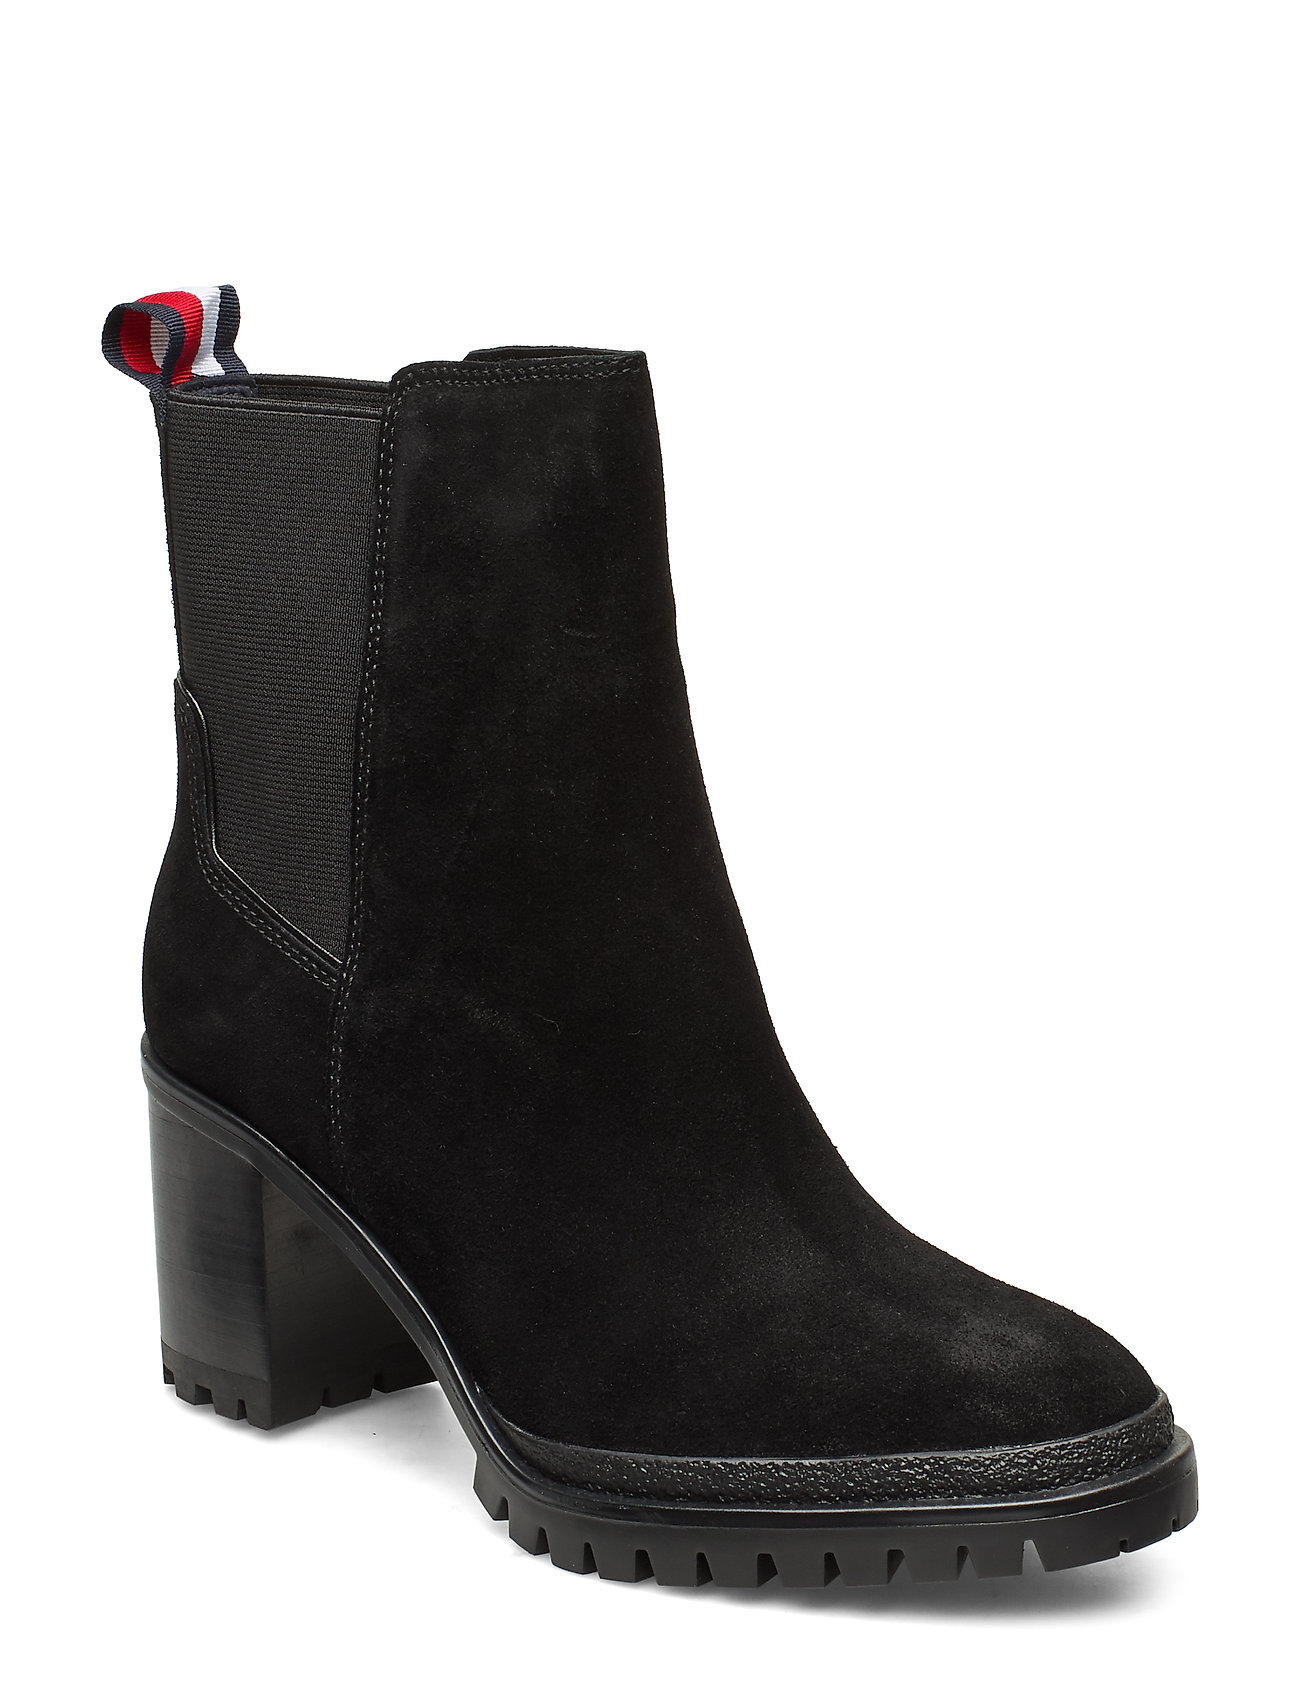 Image of Sporty Mid Heel Chelsea Shoes Boots Ankle Boots Ankle Boots With Heel Sort Tommy Hilfiger (3229252719)